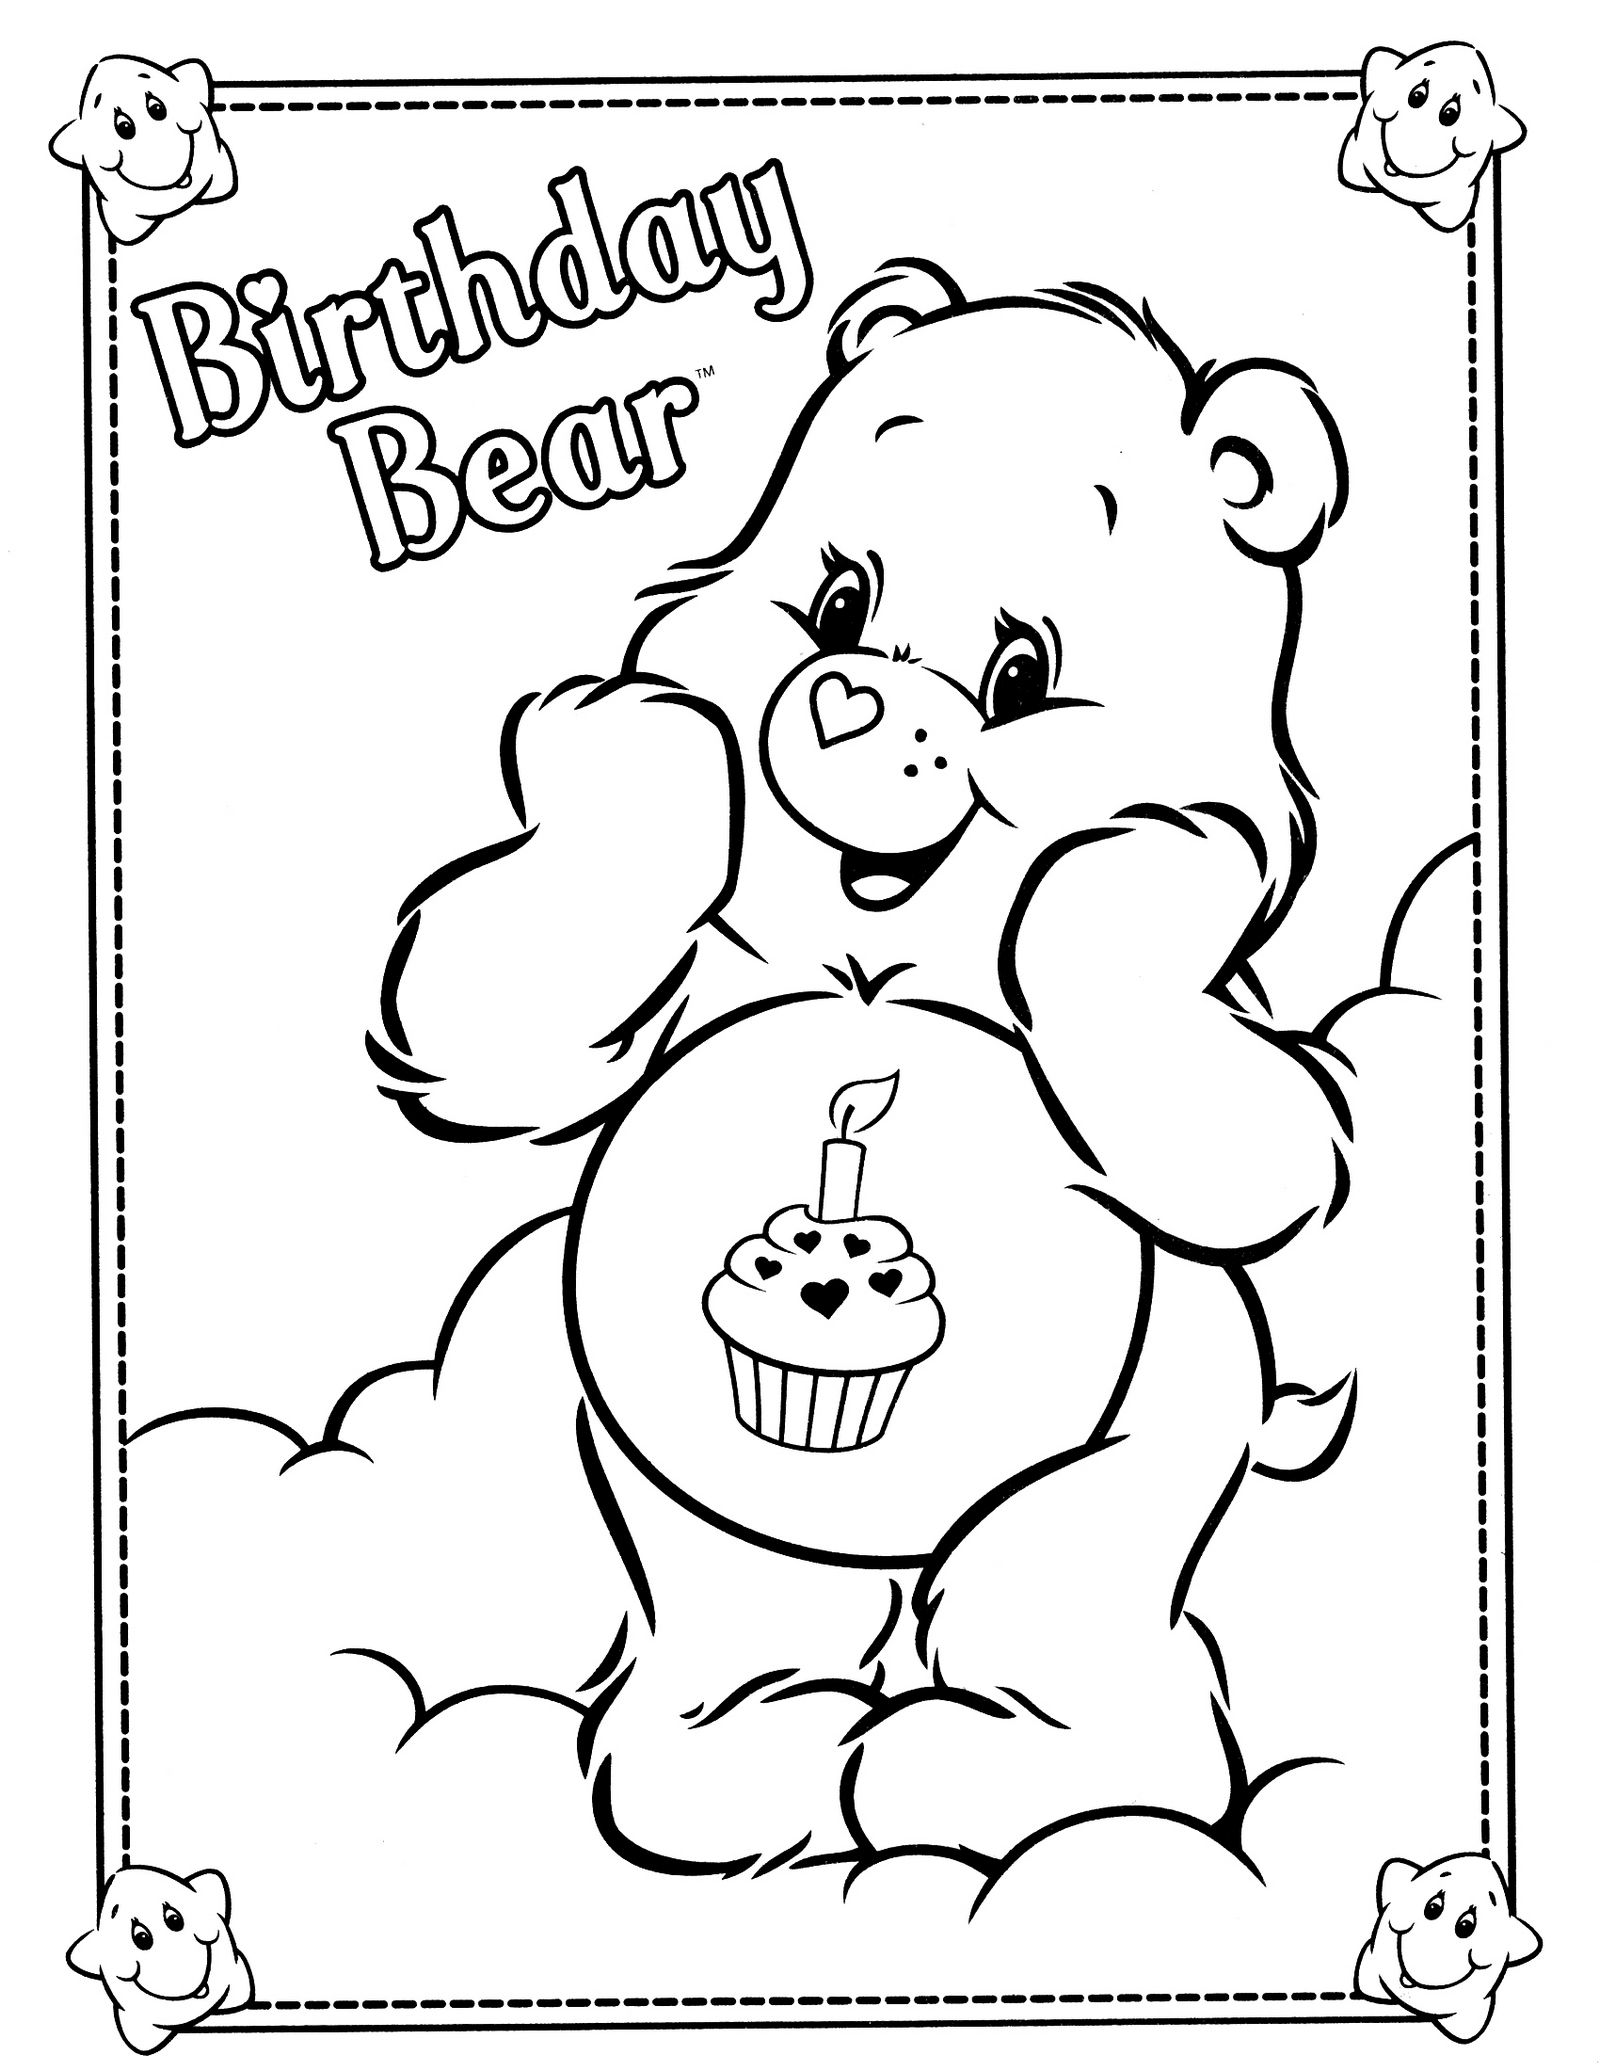 Birthday Bear From Care Bears Coloring Sheet